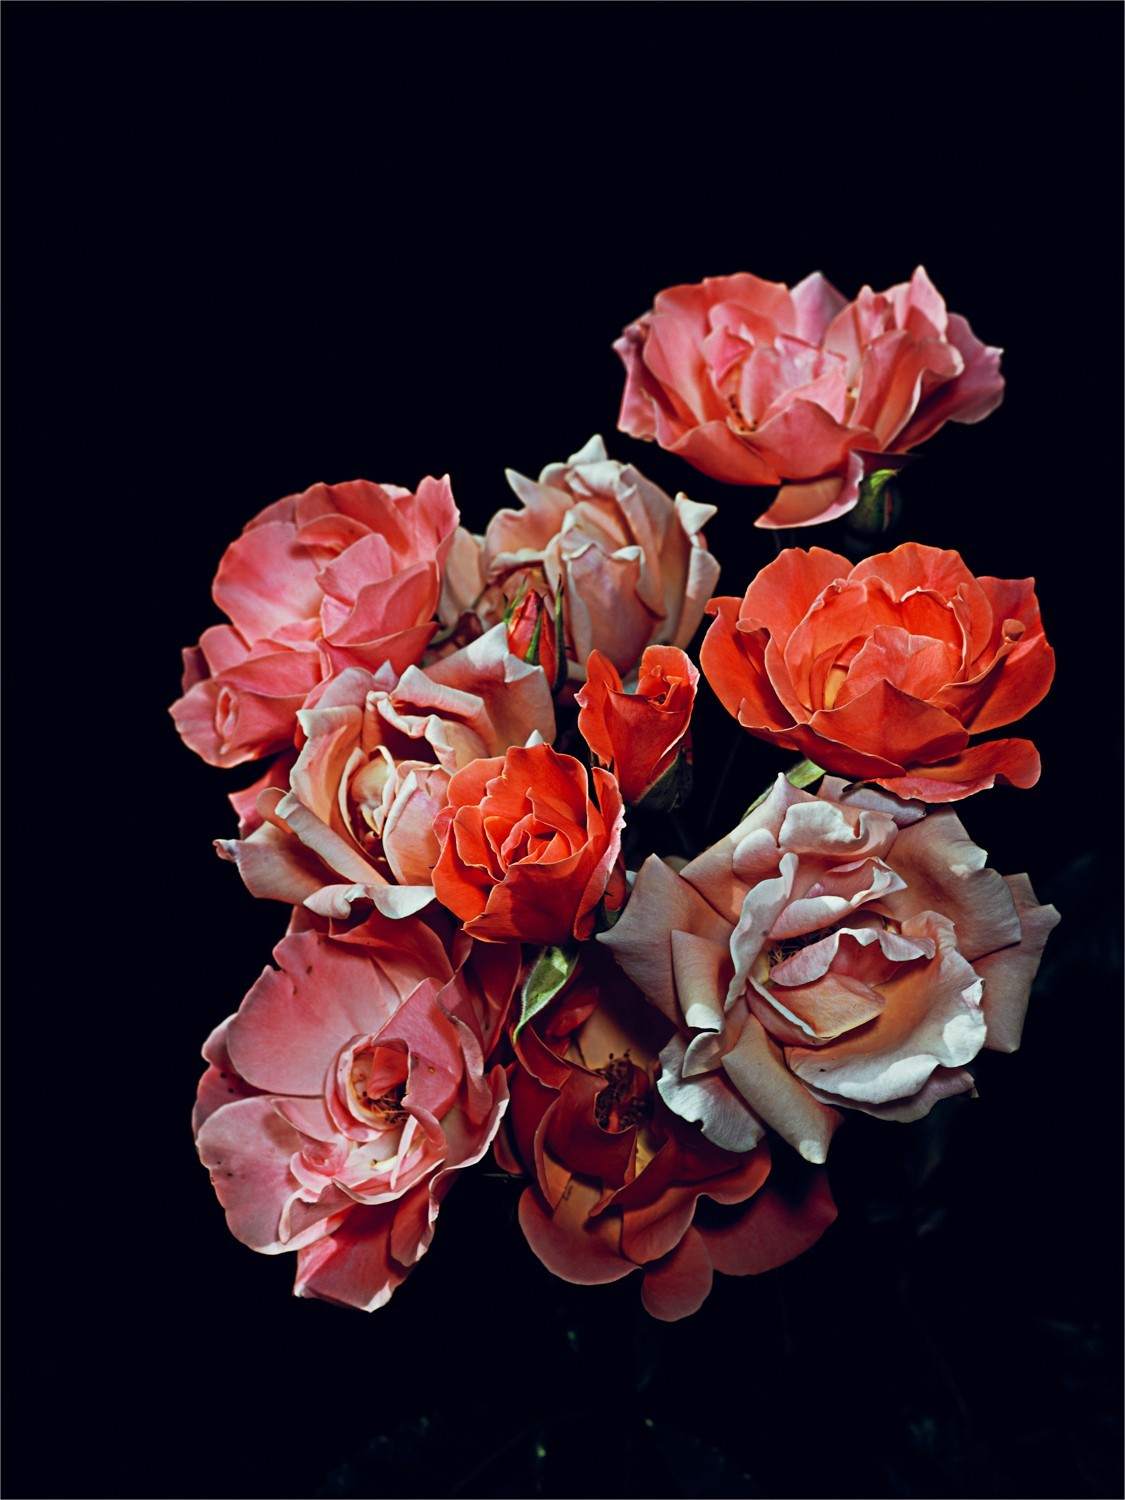 Rose Garden nº 7, Graham Lott